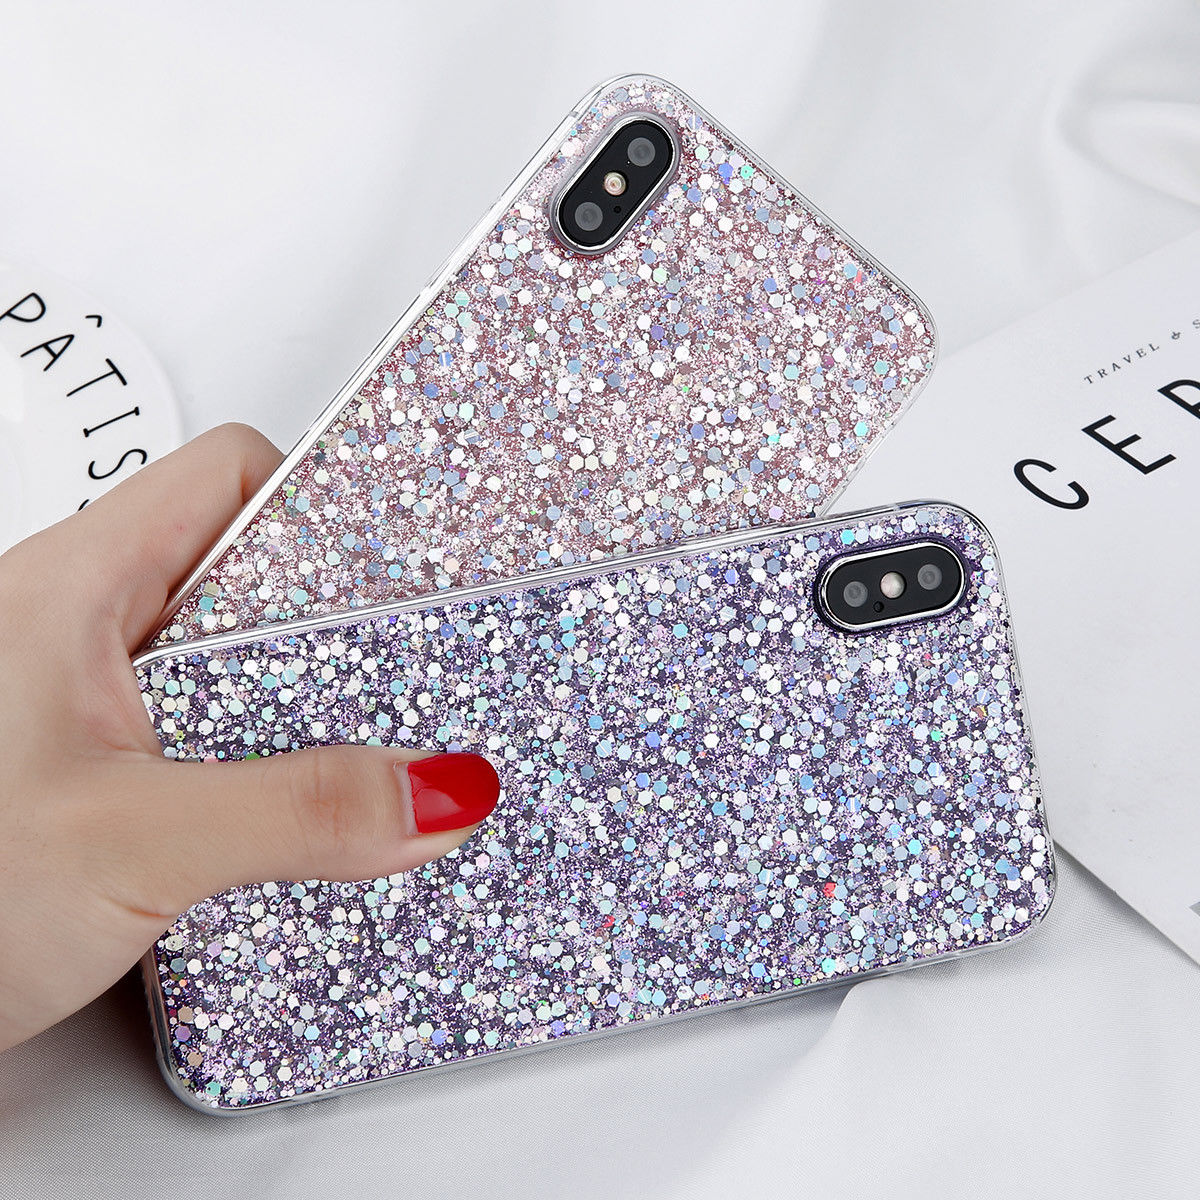 YISHANGOU Bling Glitter Sparkle Phone Case For iPhone X 10 8 Plus Soft TPU Silicone Shockproof Back Cover For iPhone 6 6S 7 Plus